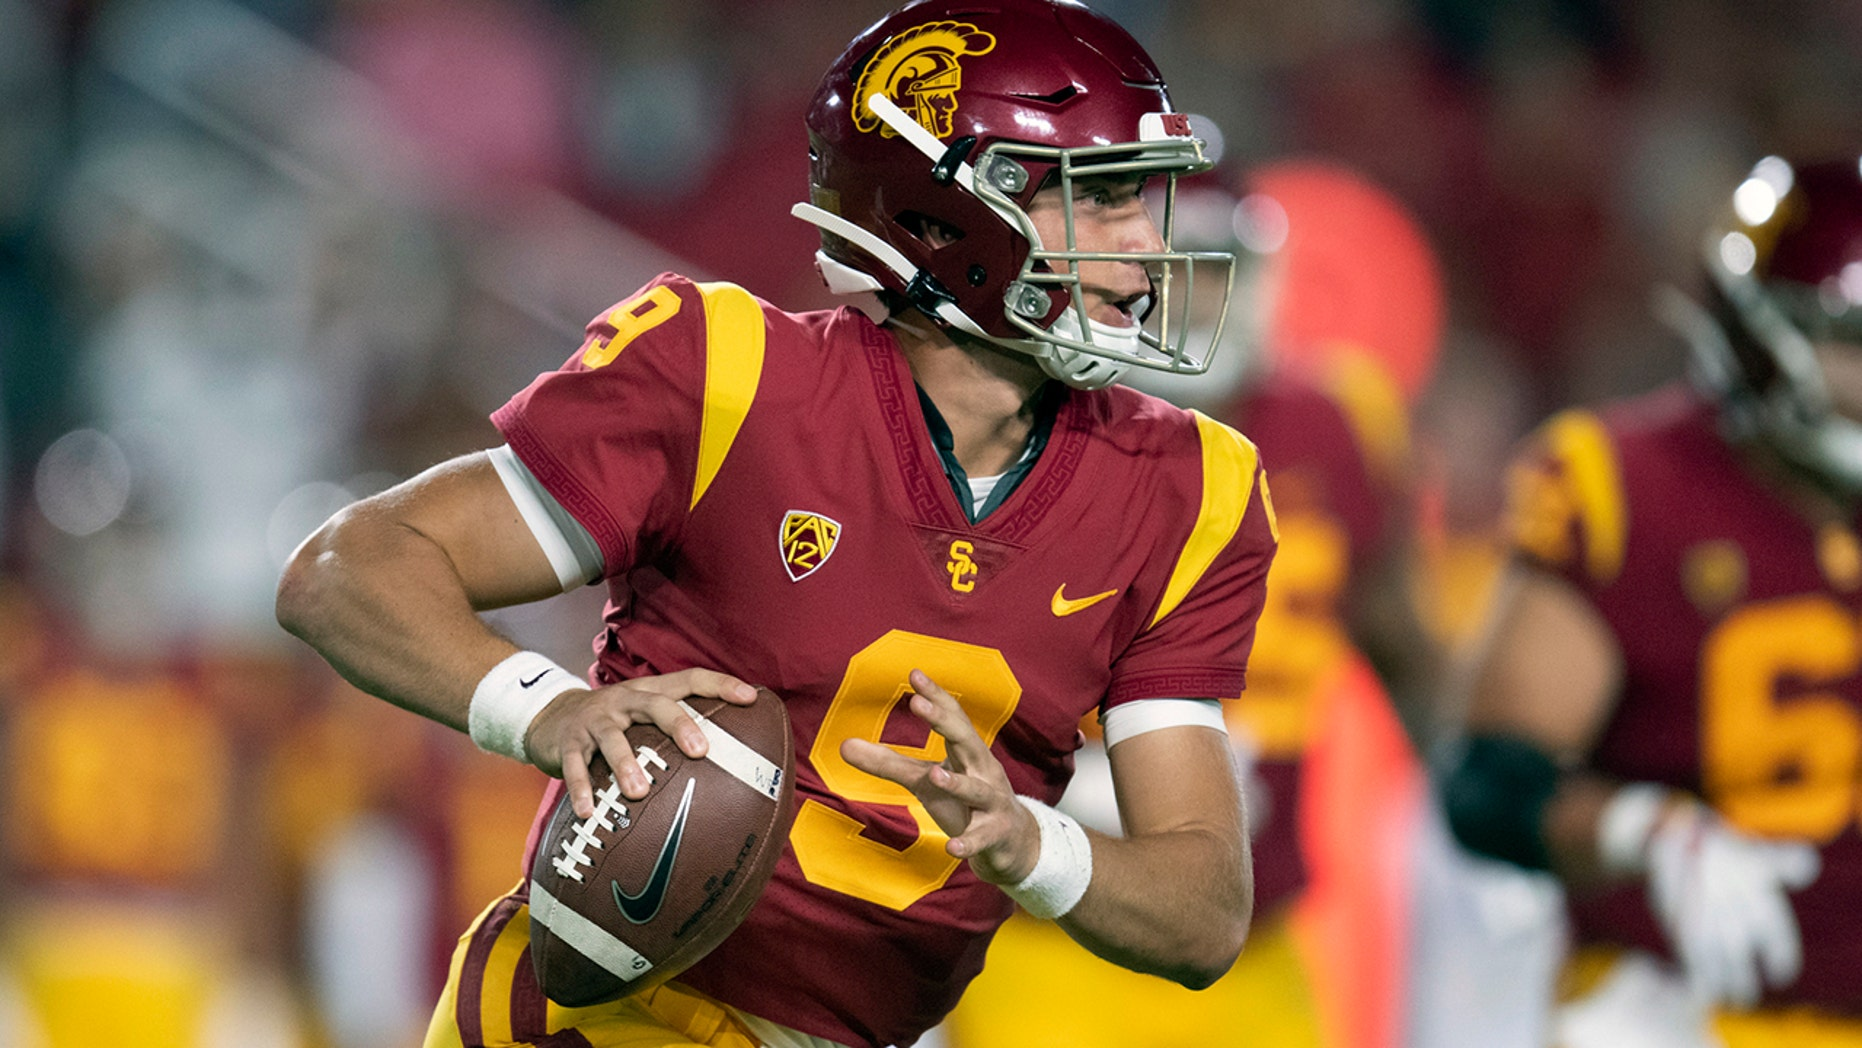 Westlake Legal Group CFB-Kedon-Slovis Fast track: USC's Slovis surprised but eager to start at QB fox-news/sports/ncaa/usc-trojans fox-news/sports/ncaa-fb fox-news/sports/ncaa fnc/sports fnc Associated Press article 8d5881f7-3d45-5dad-a99a-bef4ef2d20af